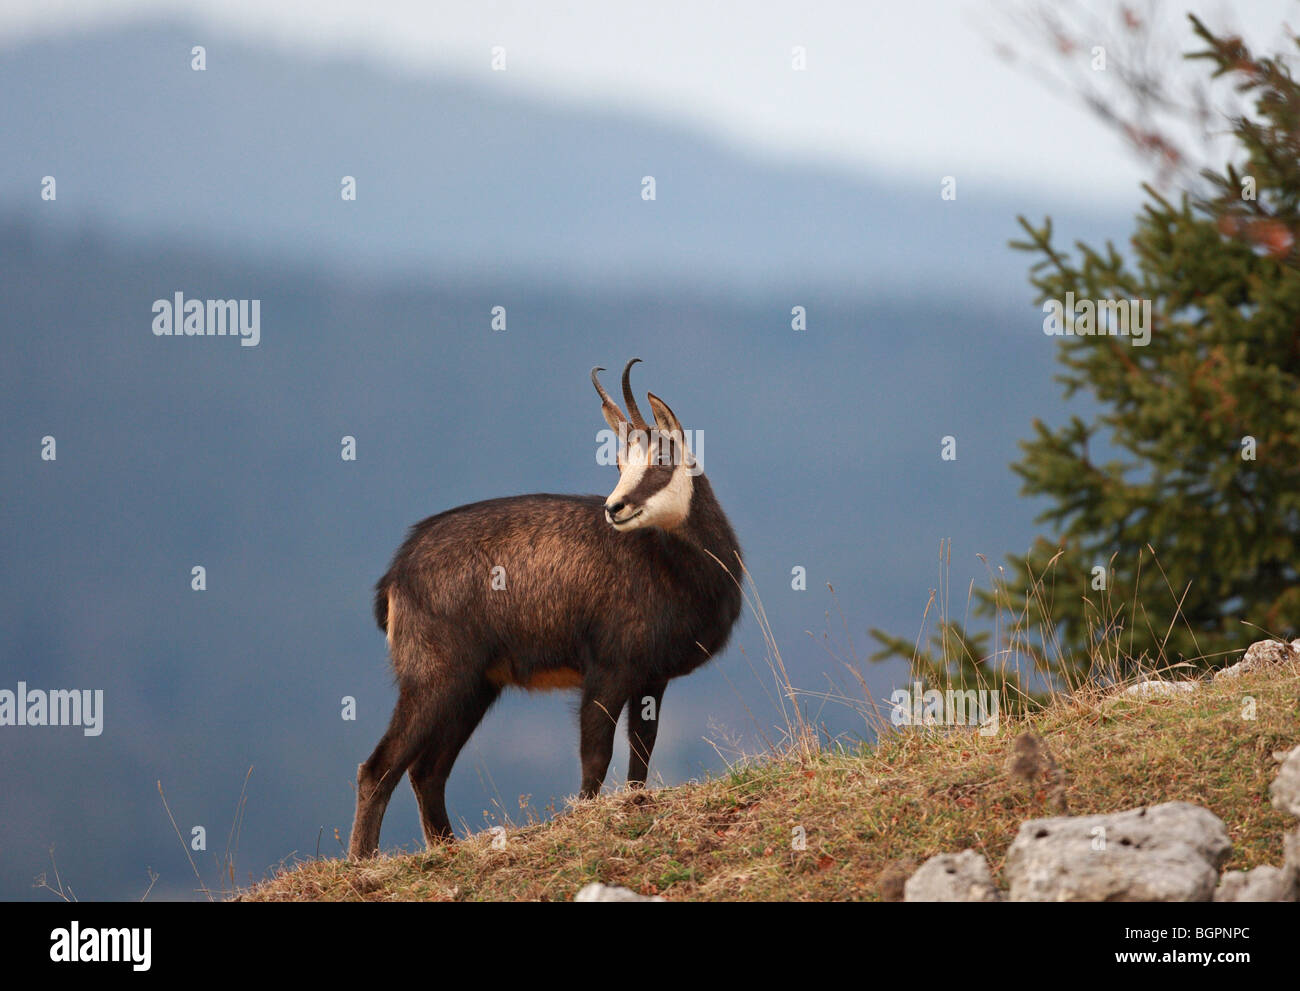 Rupicarpa rupicarpa, chamois, strictly protected animals under the European Habitats Directive. - Stock Image